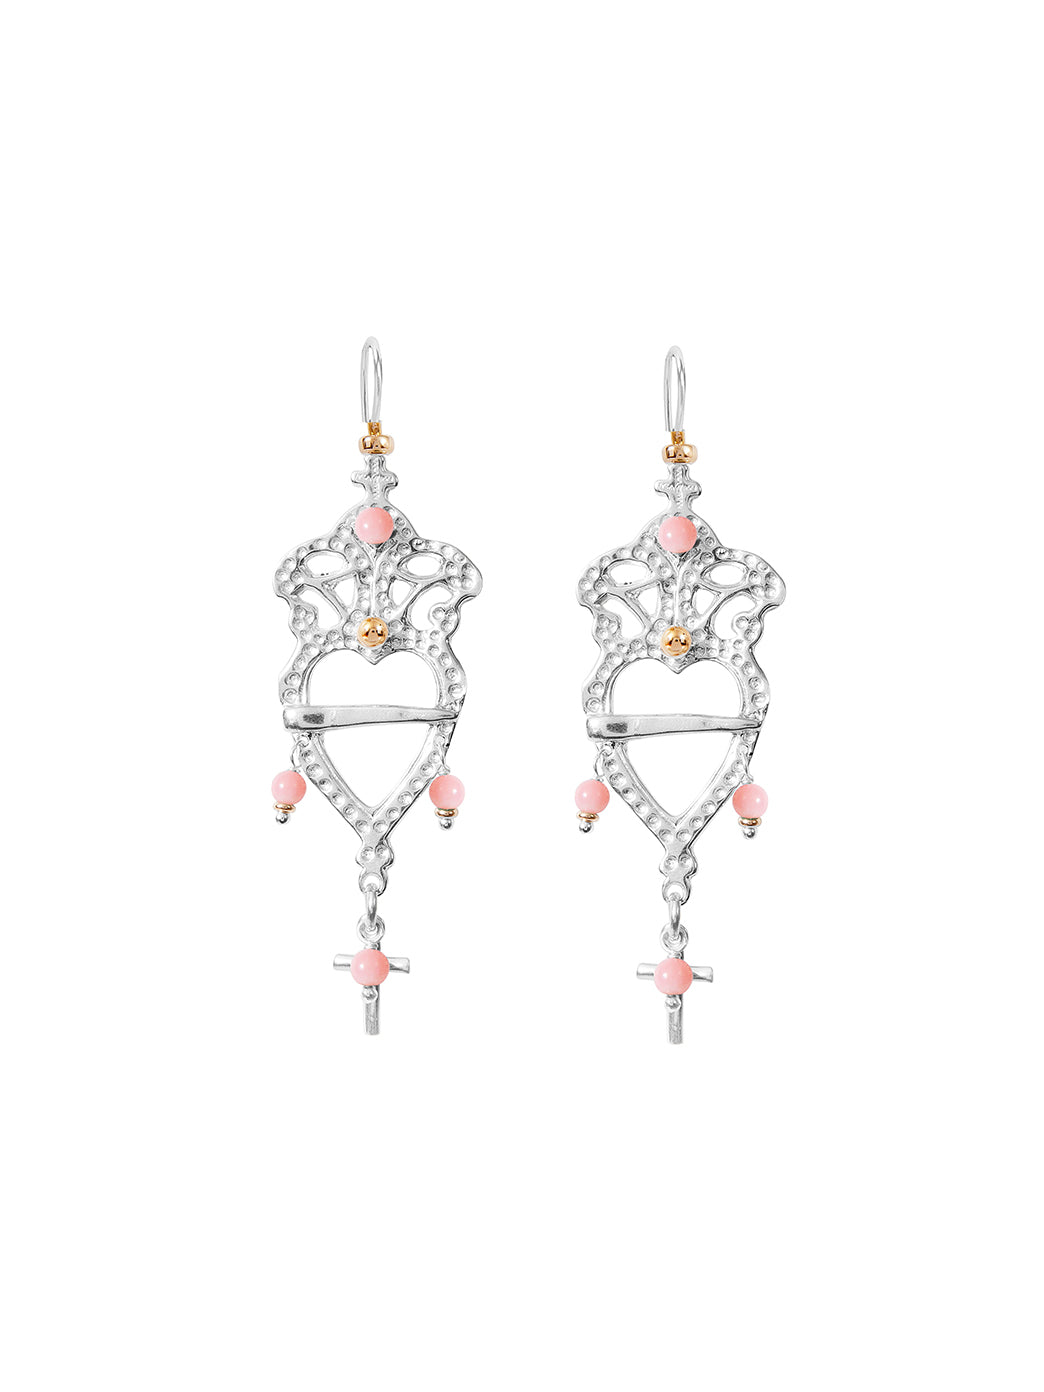 Fiorina Jewellery Heartlore Earrings Pink Opal